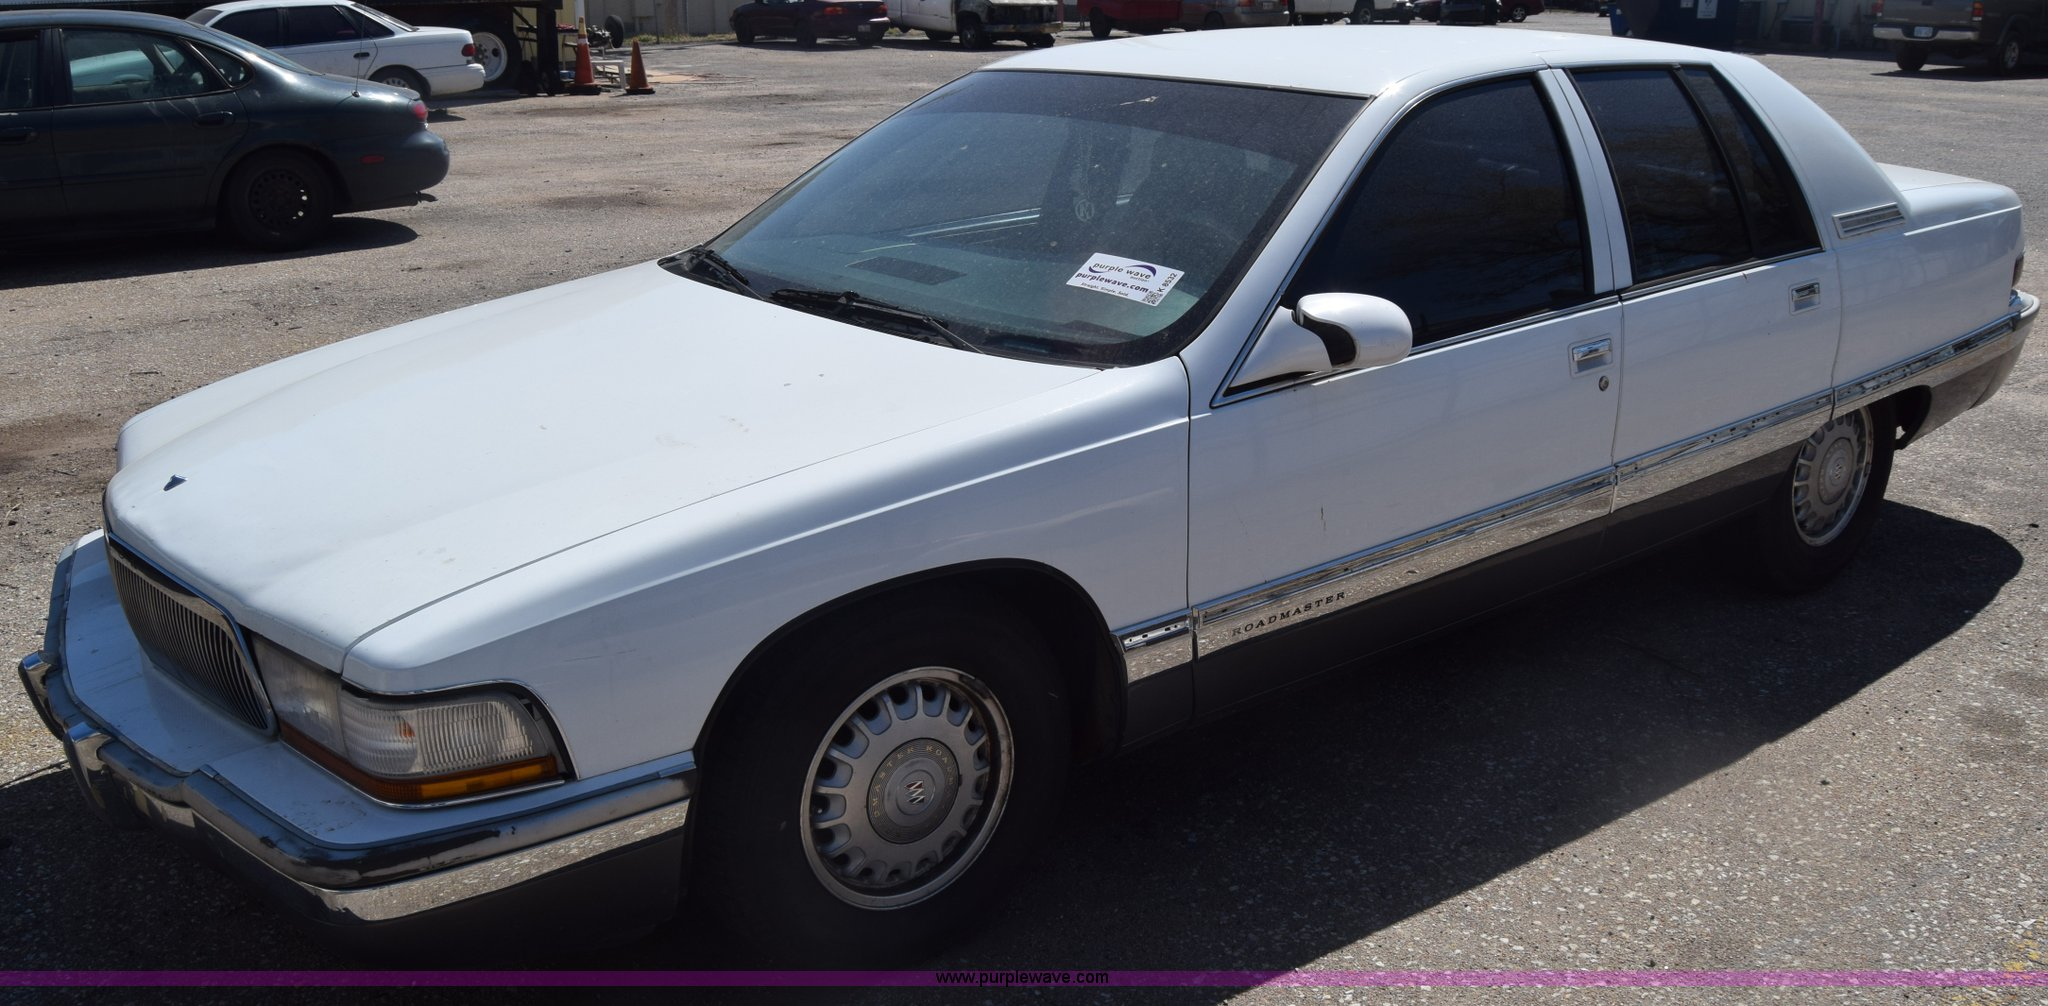 1995 buick roadmaster in wichita ks item k8532 sold purple wave 1995 buick roadmaster in wichita ks